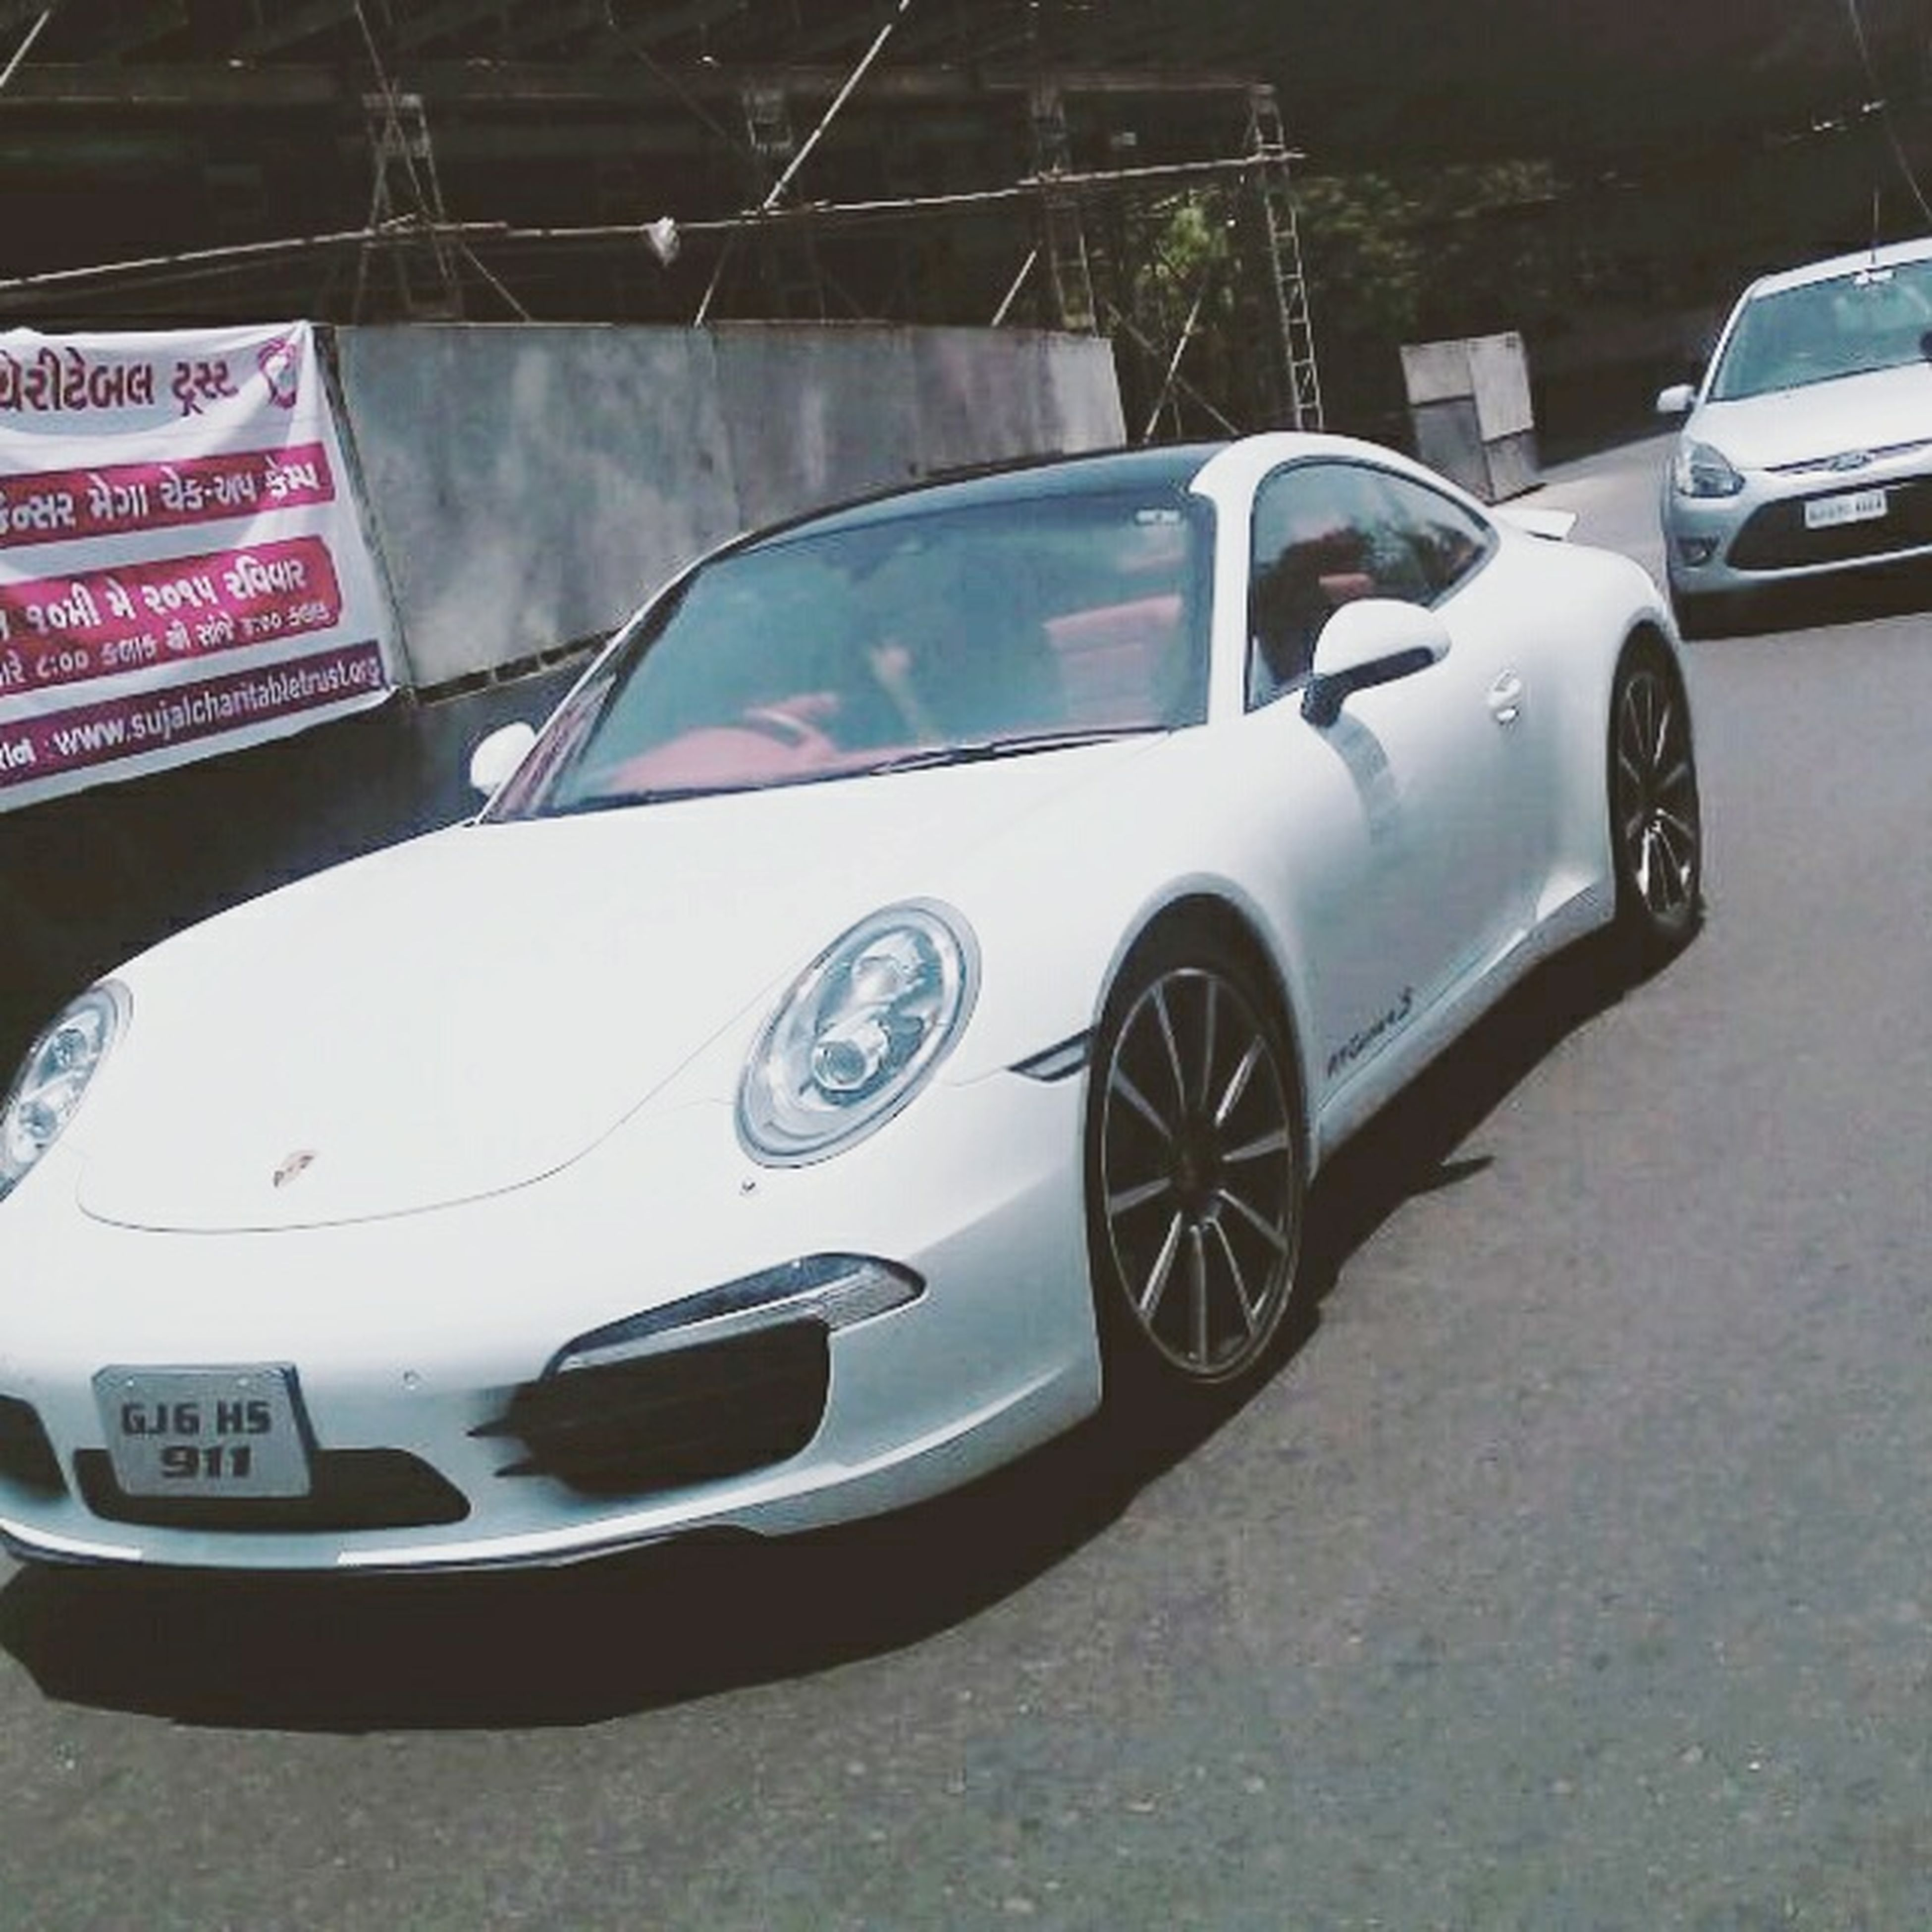 Capture The Moment Chasing Muscle Cars Taking Photos Fun With Photography Porsche 911 Biking And Photography Hanging Out Urban Exploration 💪😎😎👌👍